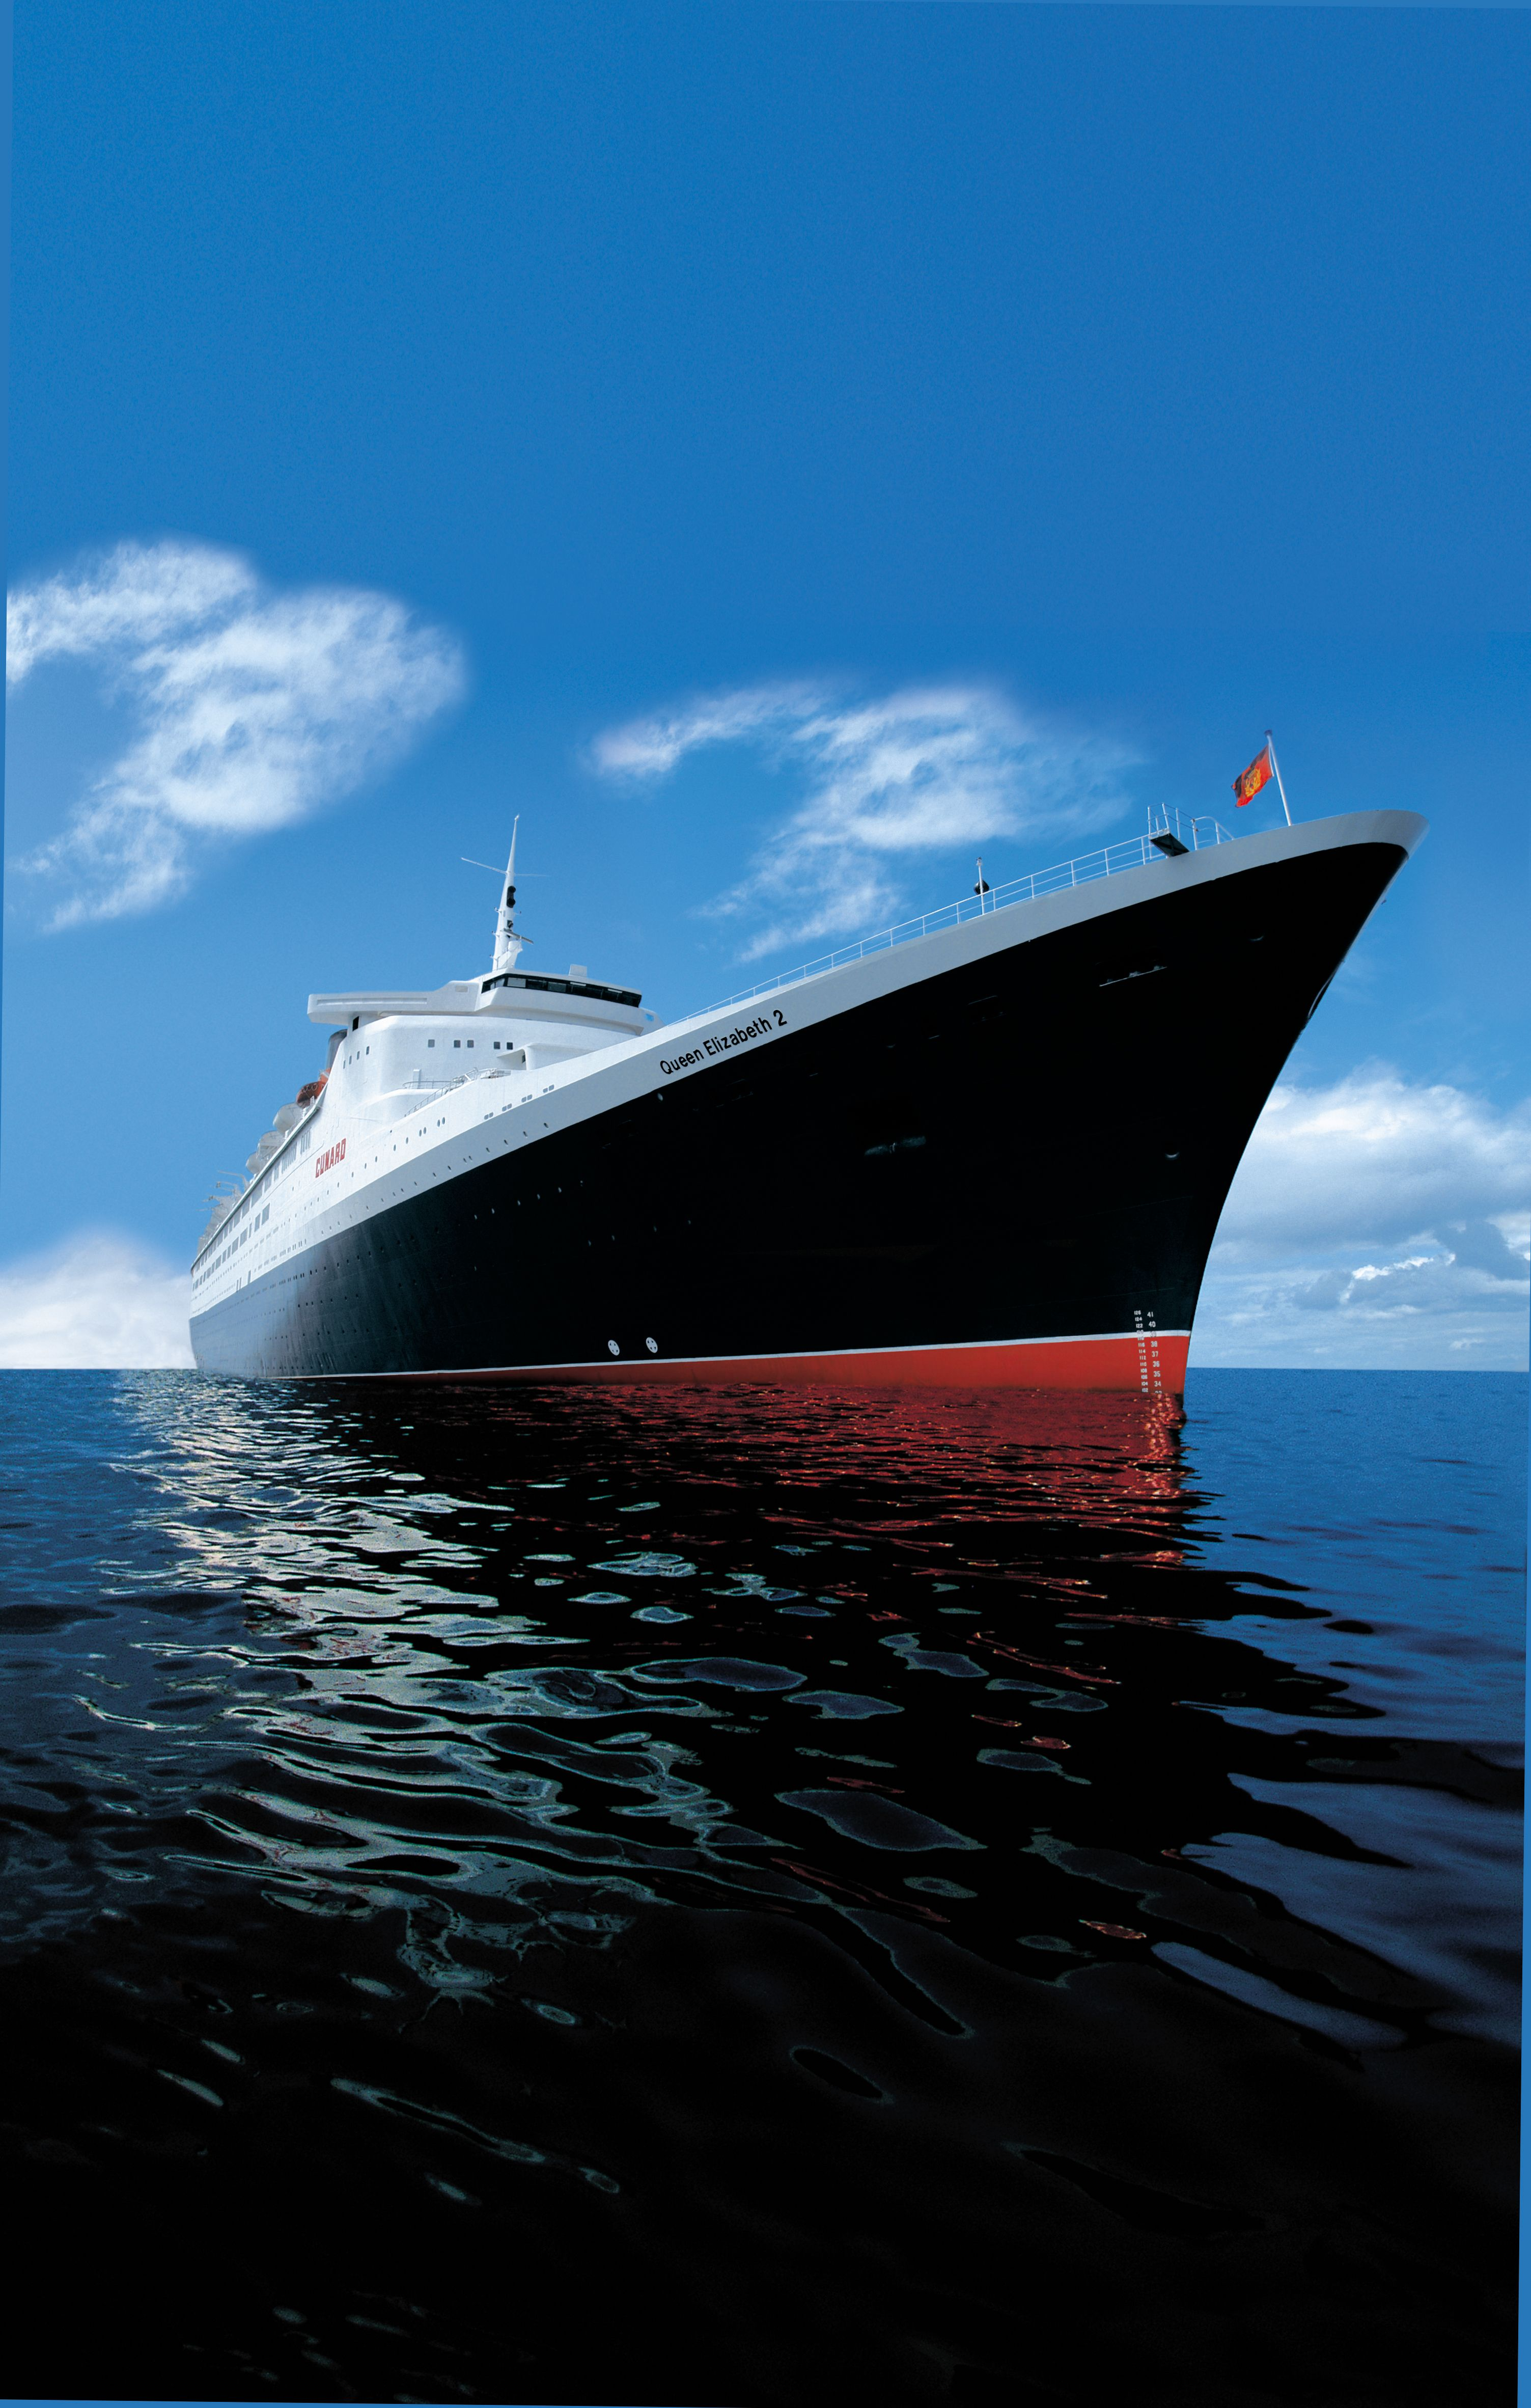 Qe2 Cruise Liner Most Beautiful Ship In The World I